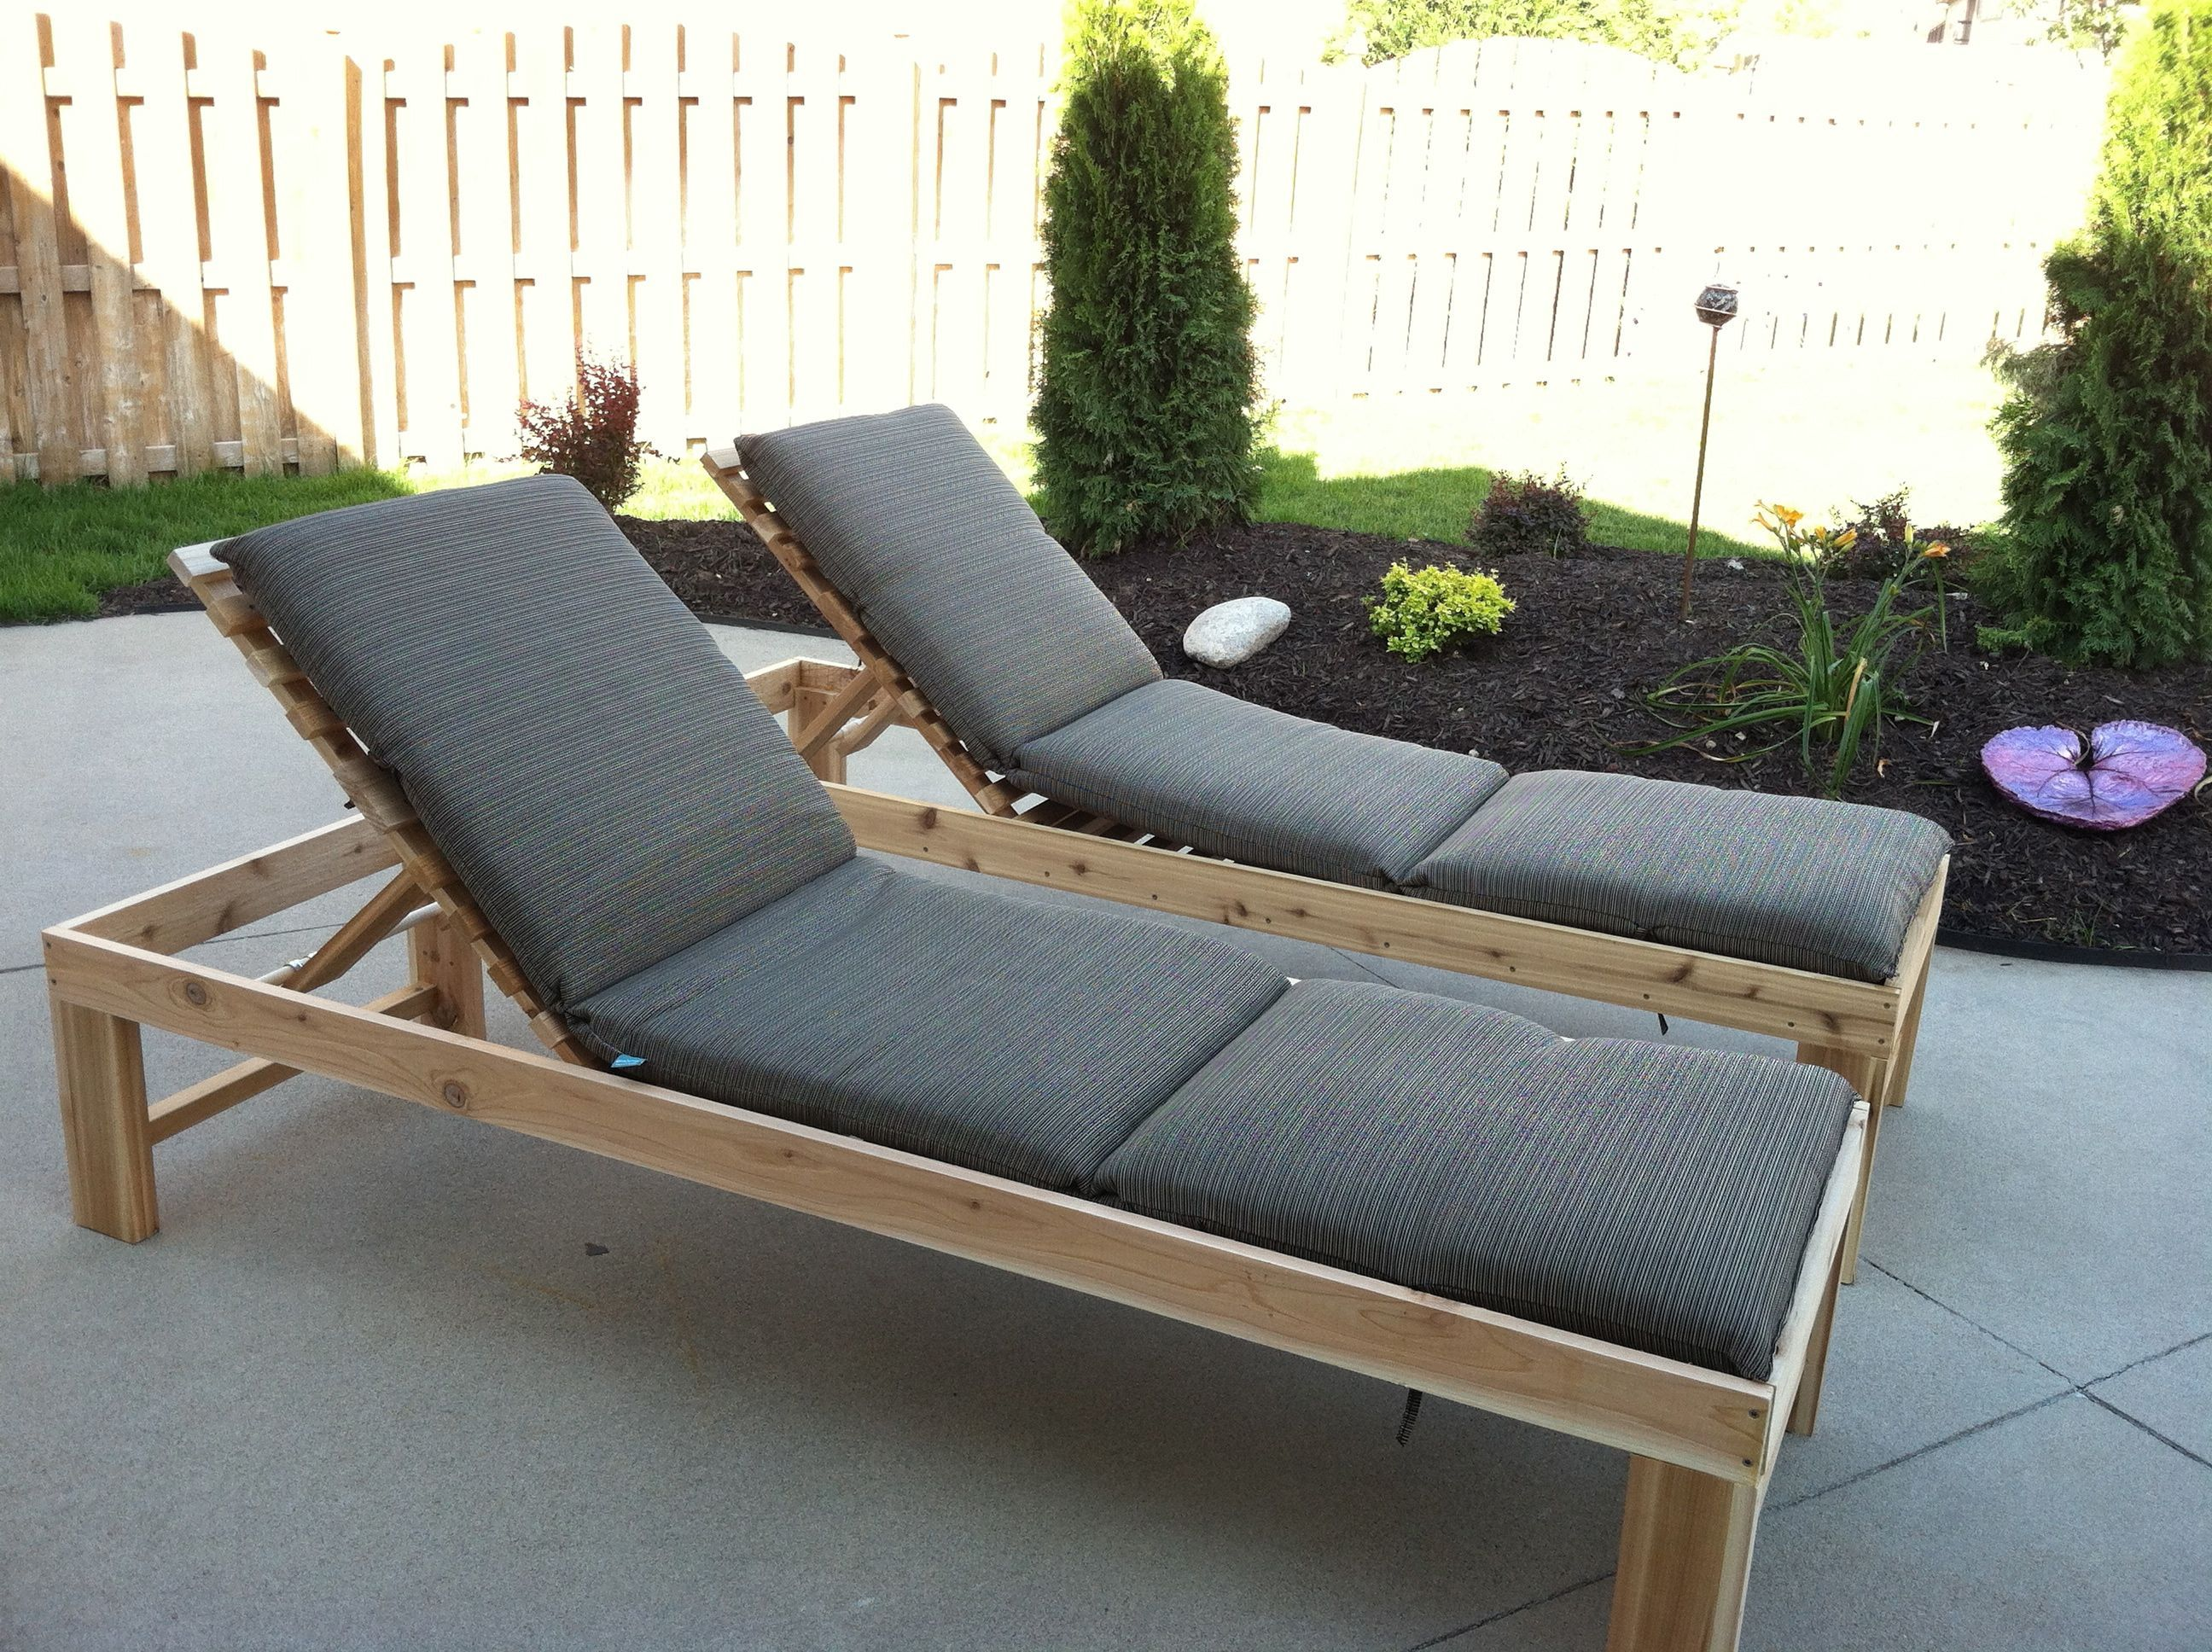 Outdoor Chaise Lounge Do It Yourself Home Projects from